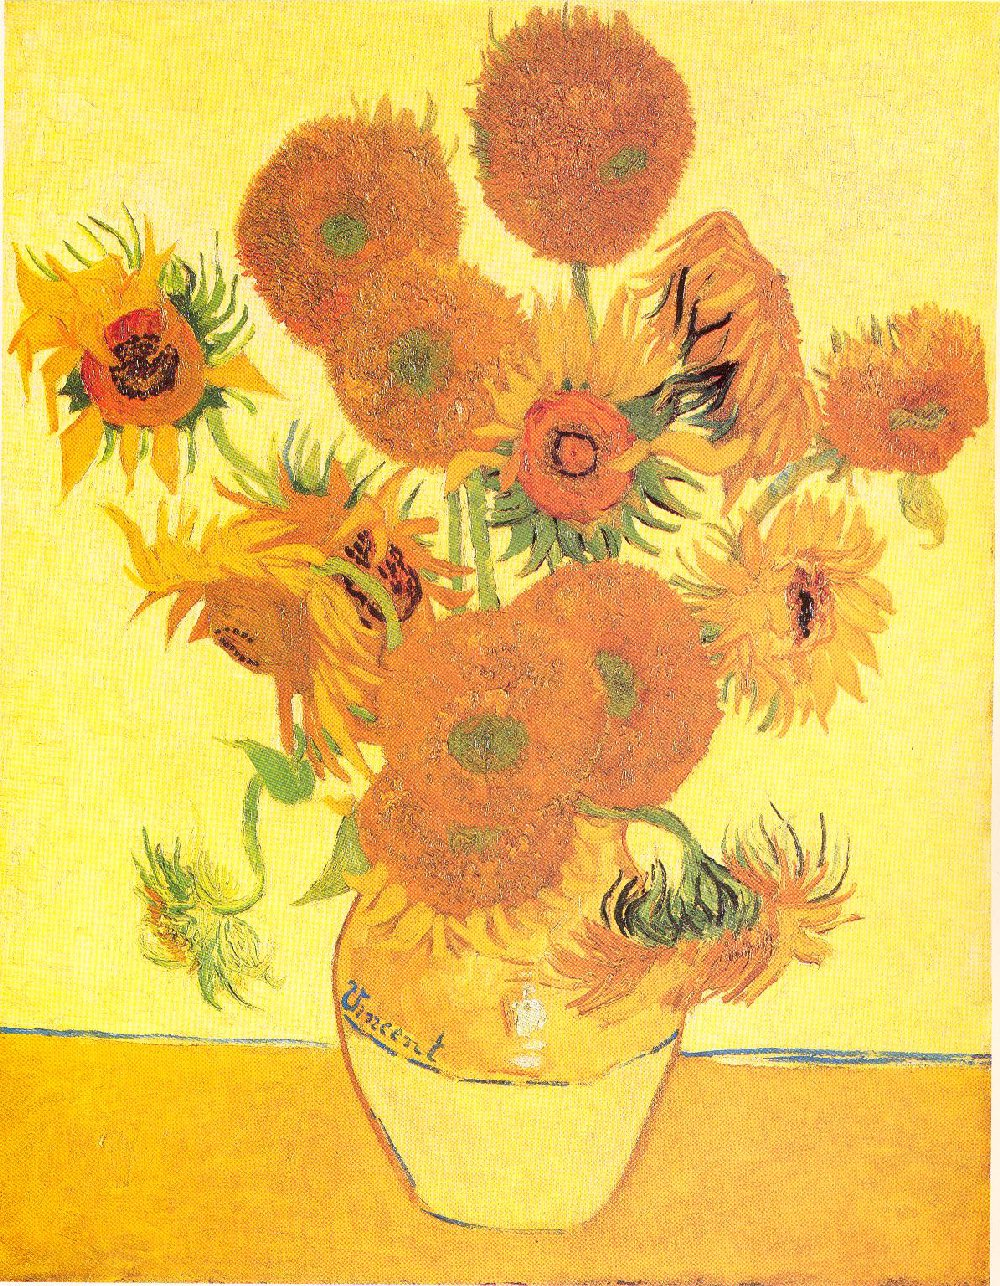 vincent van gogh biography quotes paintings the art history sunflowers 1888